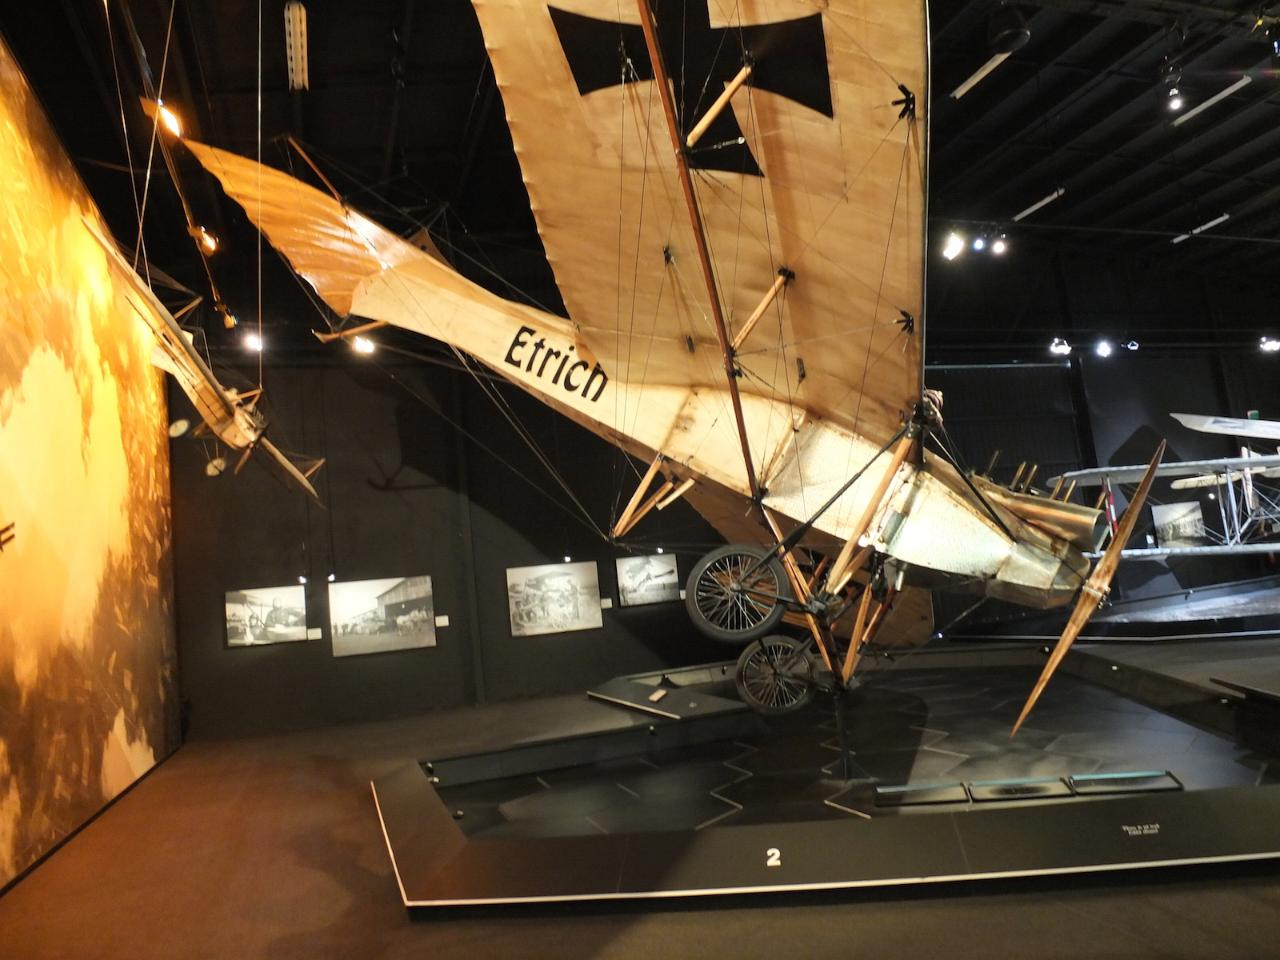 World War 1 aircraft on display in Omaka Aviation Heritage Centre